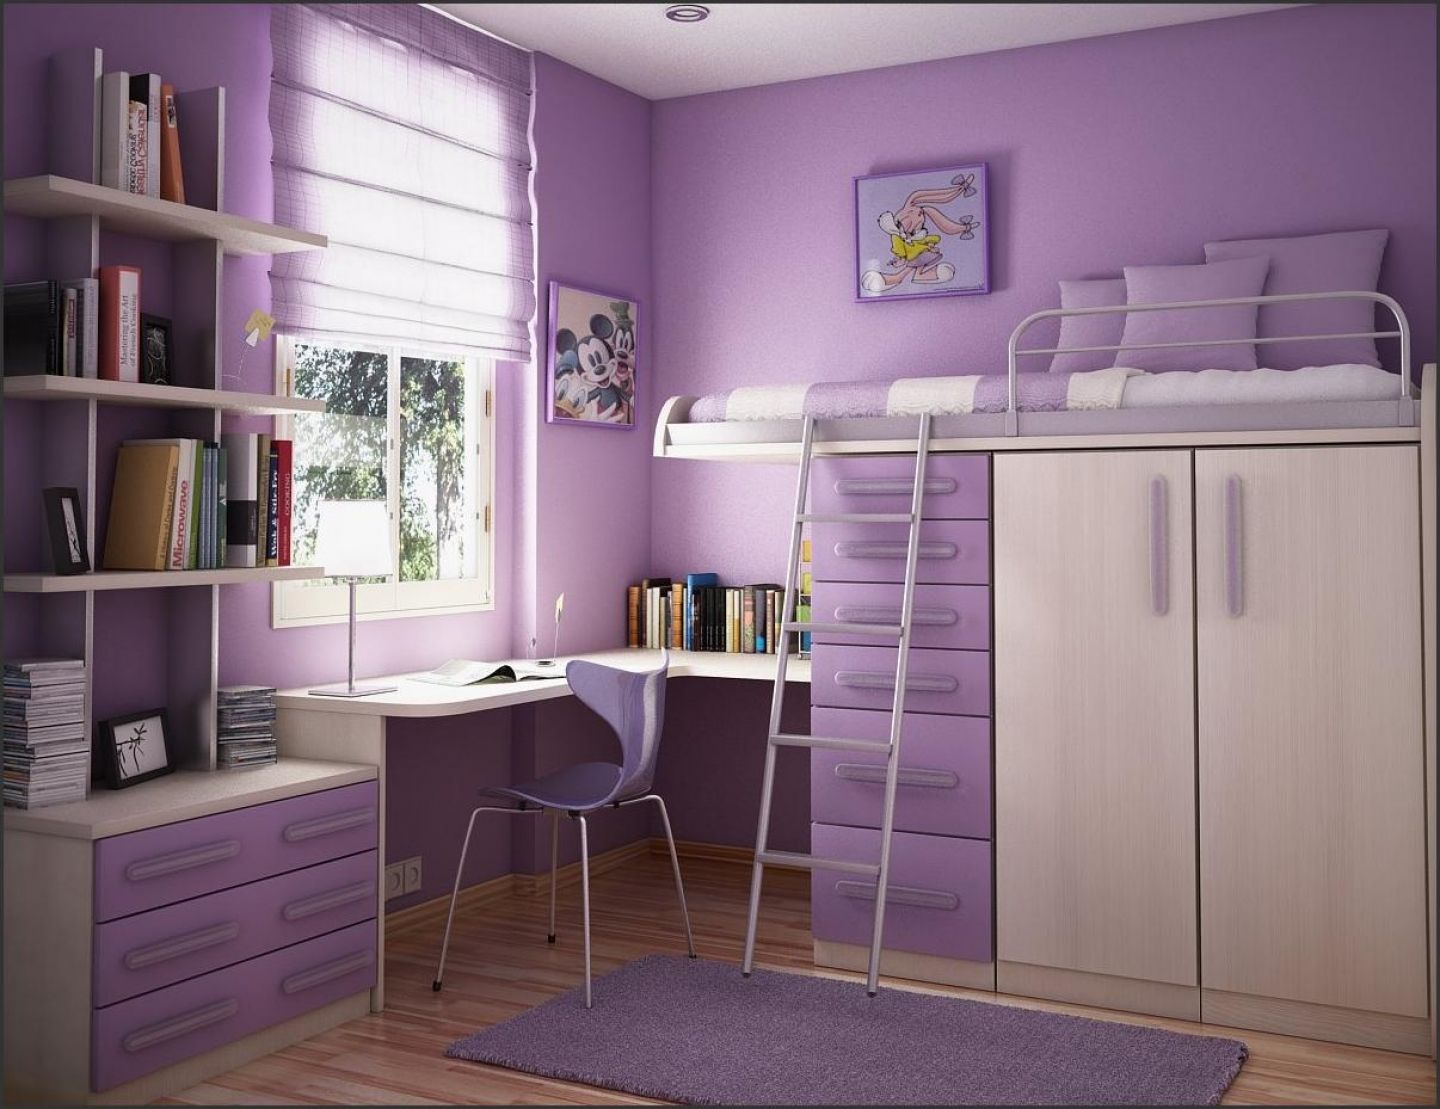 Teen Girl Bedroom Decorating Ideas 0613 140358 Bedroom